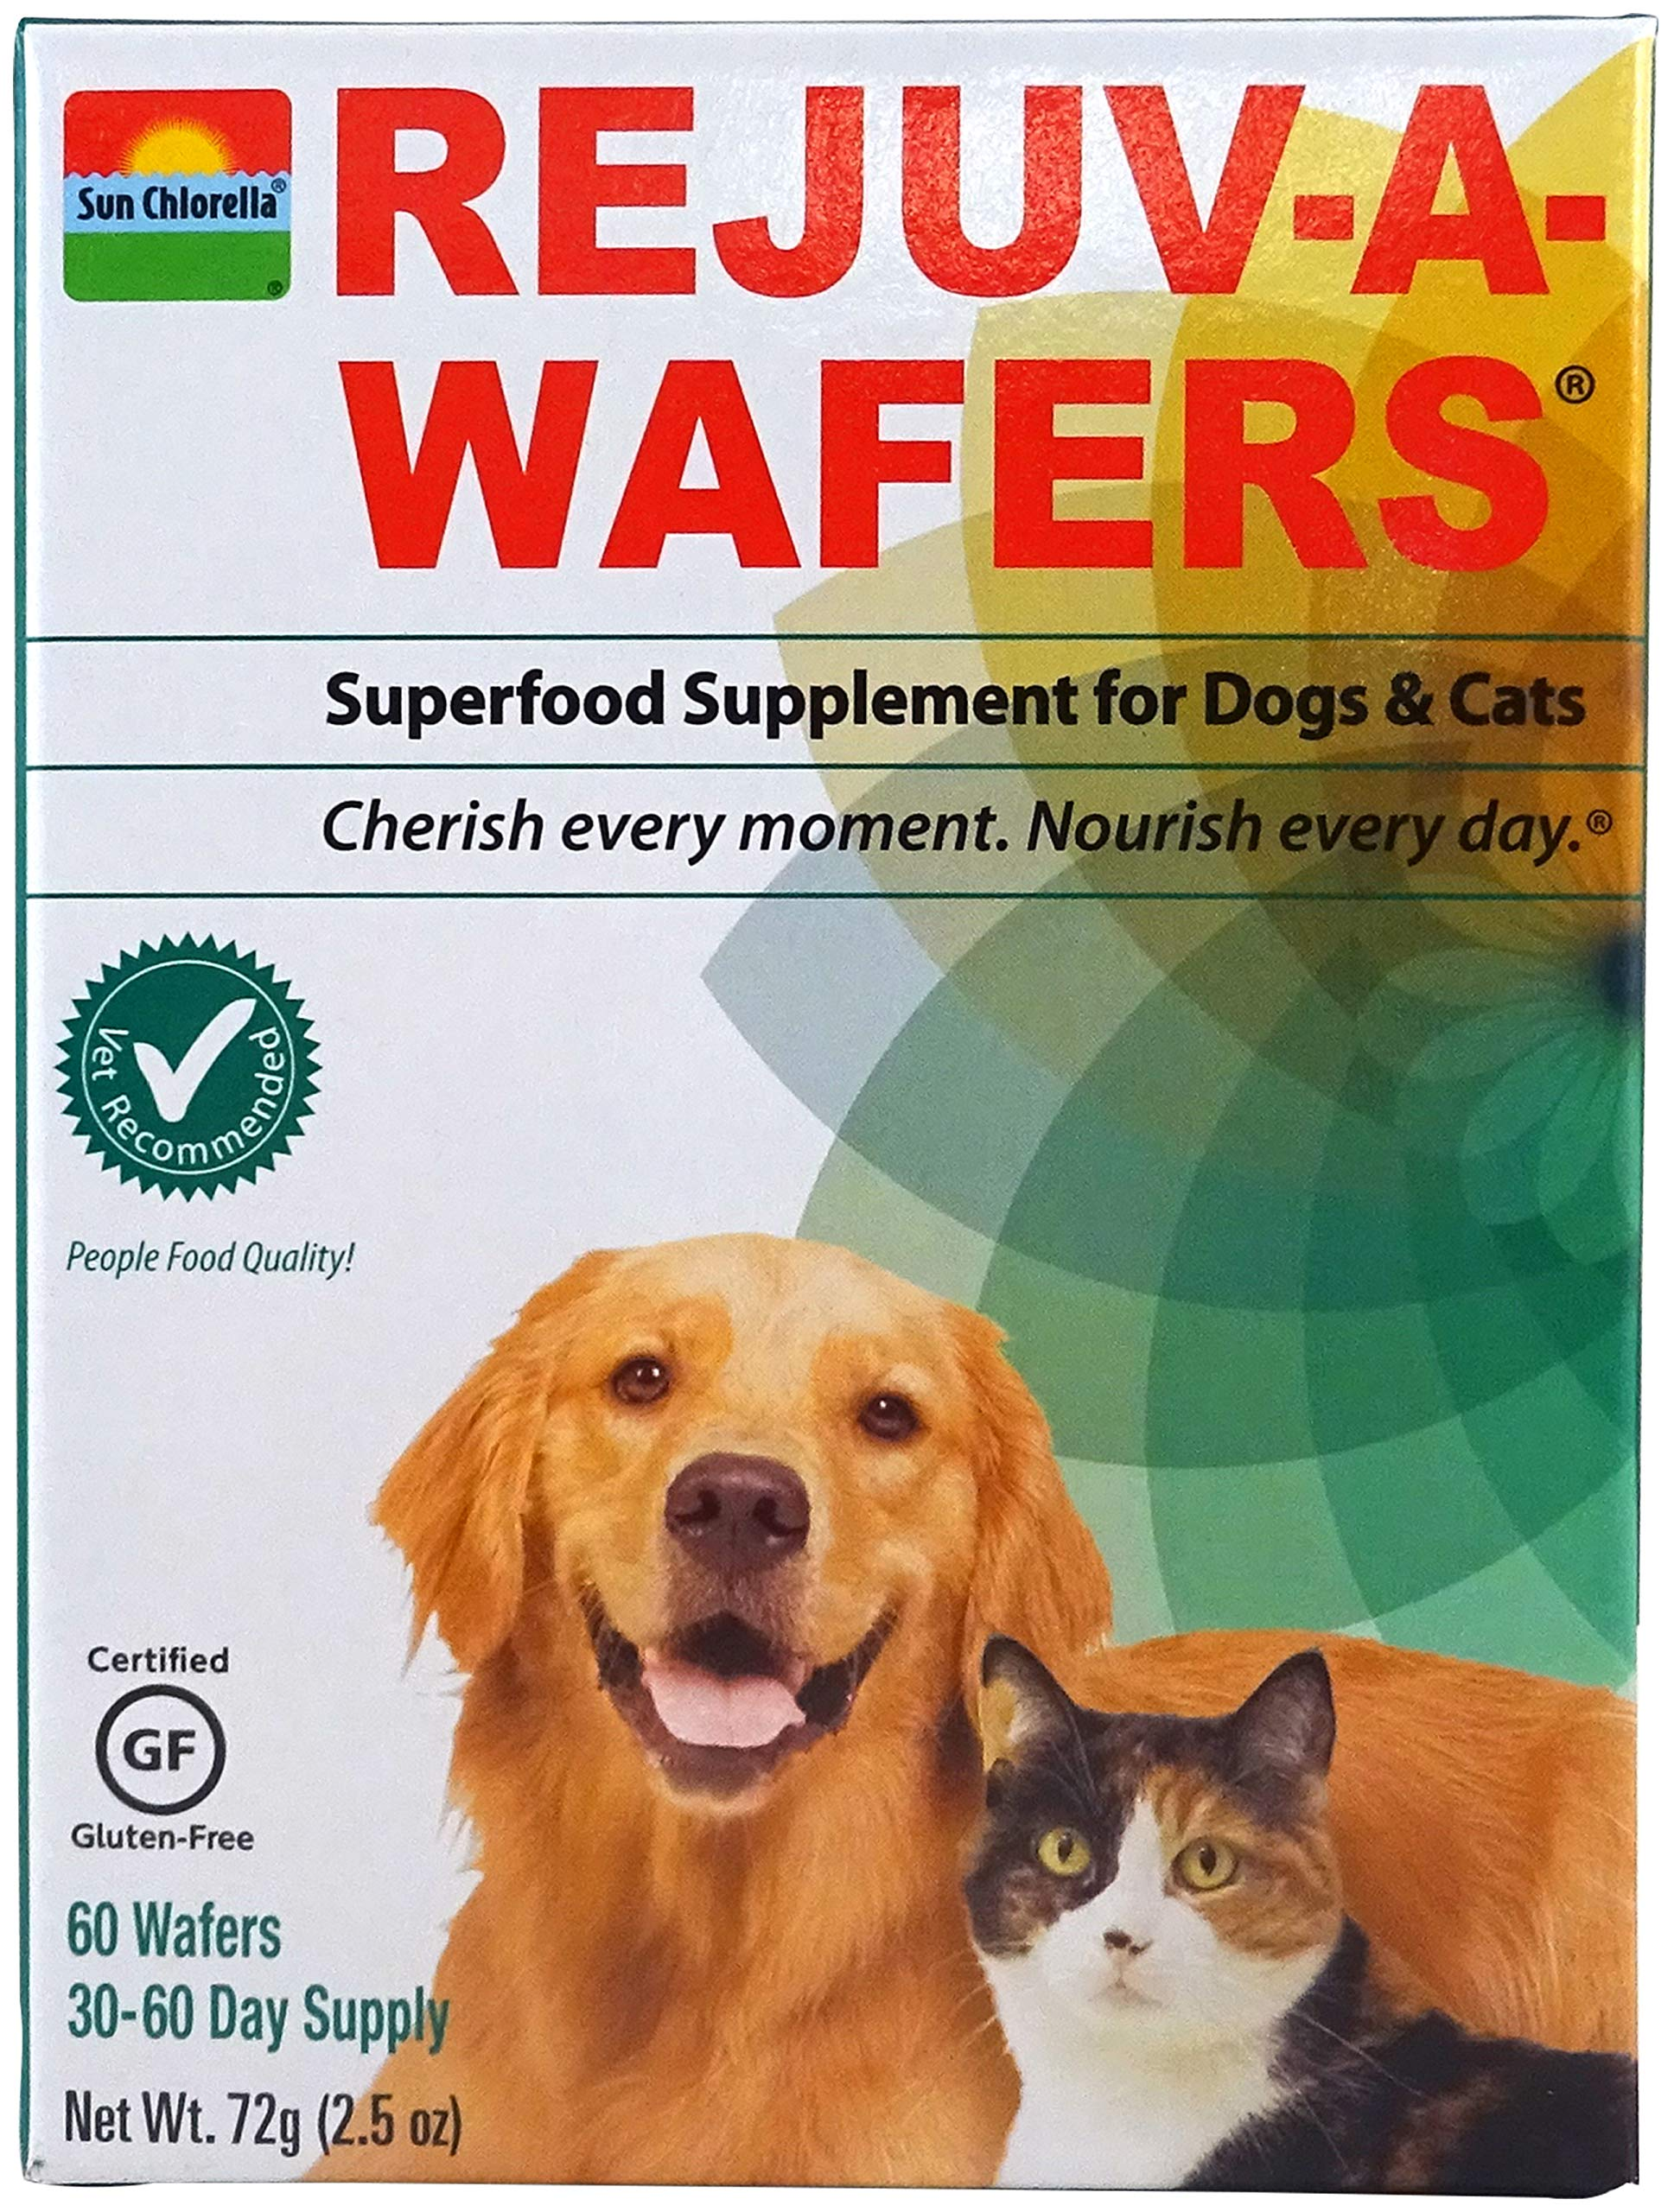 Sun Chlorella- Rejuv-A-Wafers- Chlorella & Eleuthero Superfood Supplement For Dogs And Cats (60 Wafers) (Rejuv-A-Wafers Single Wafers) by Sun Chlorella